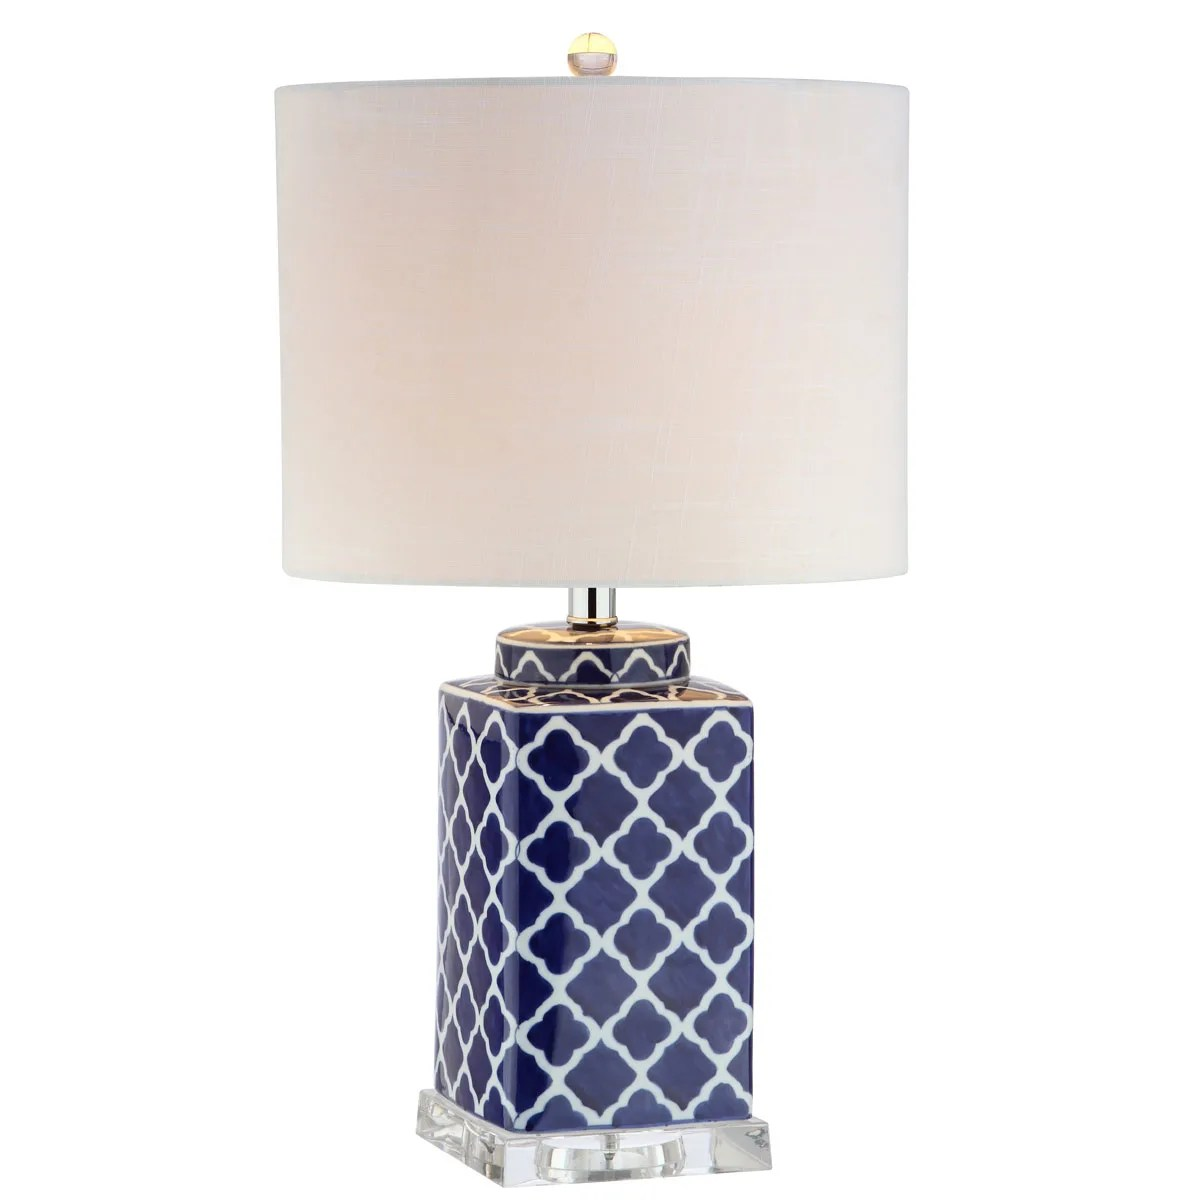 Jonathan Y Lighting Jyl3011a Blue White Moroccan Style Led Table Lamp With Quatrefoil Design Lightingdirect Com